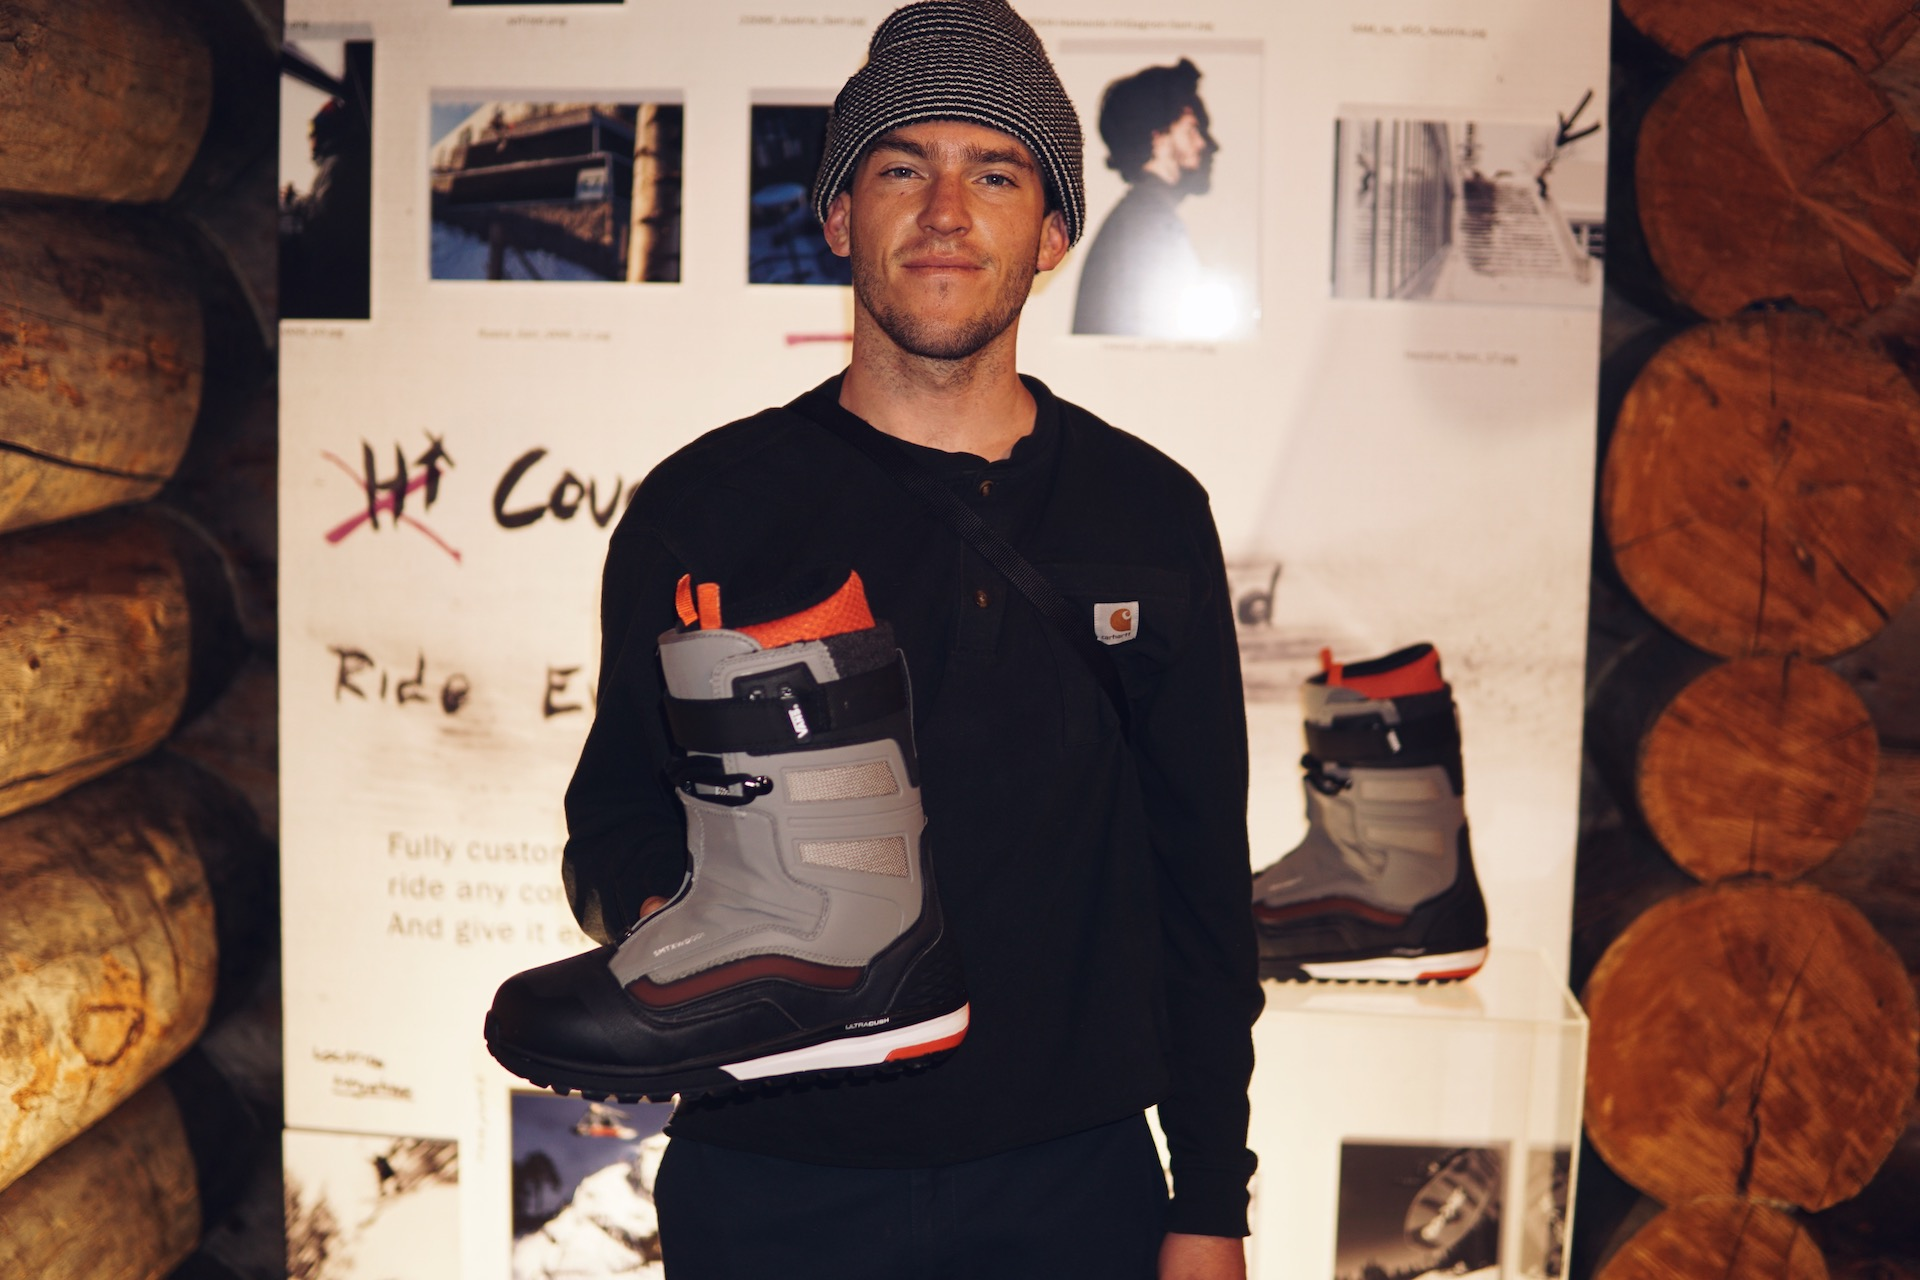 Sam Taxwood stoked on his first ever pro model boot.